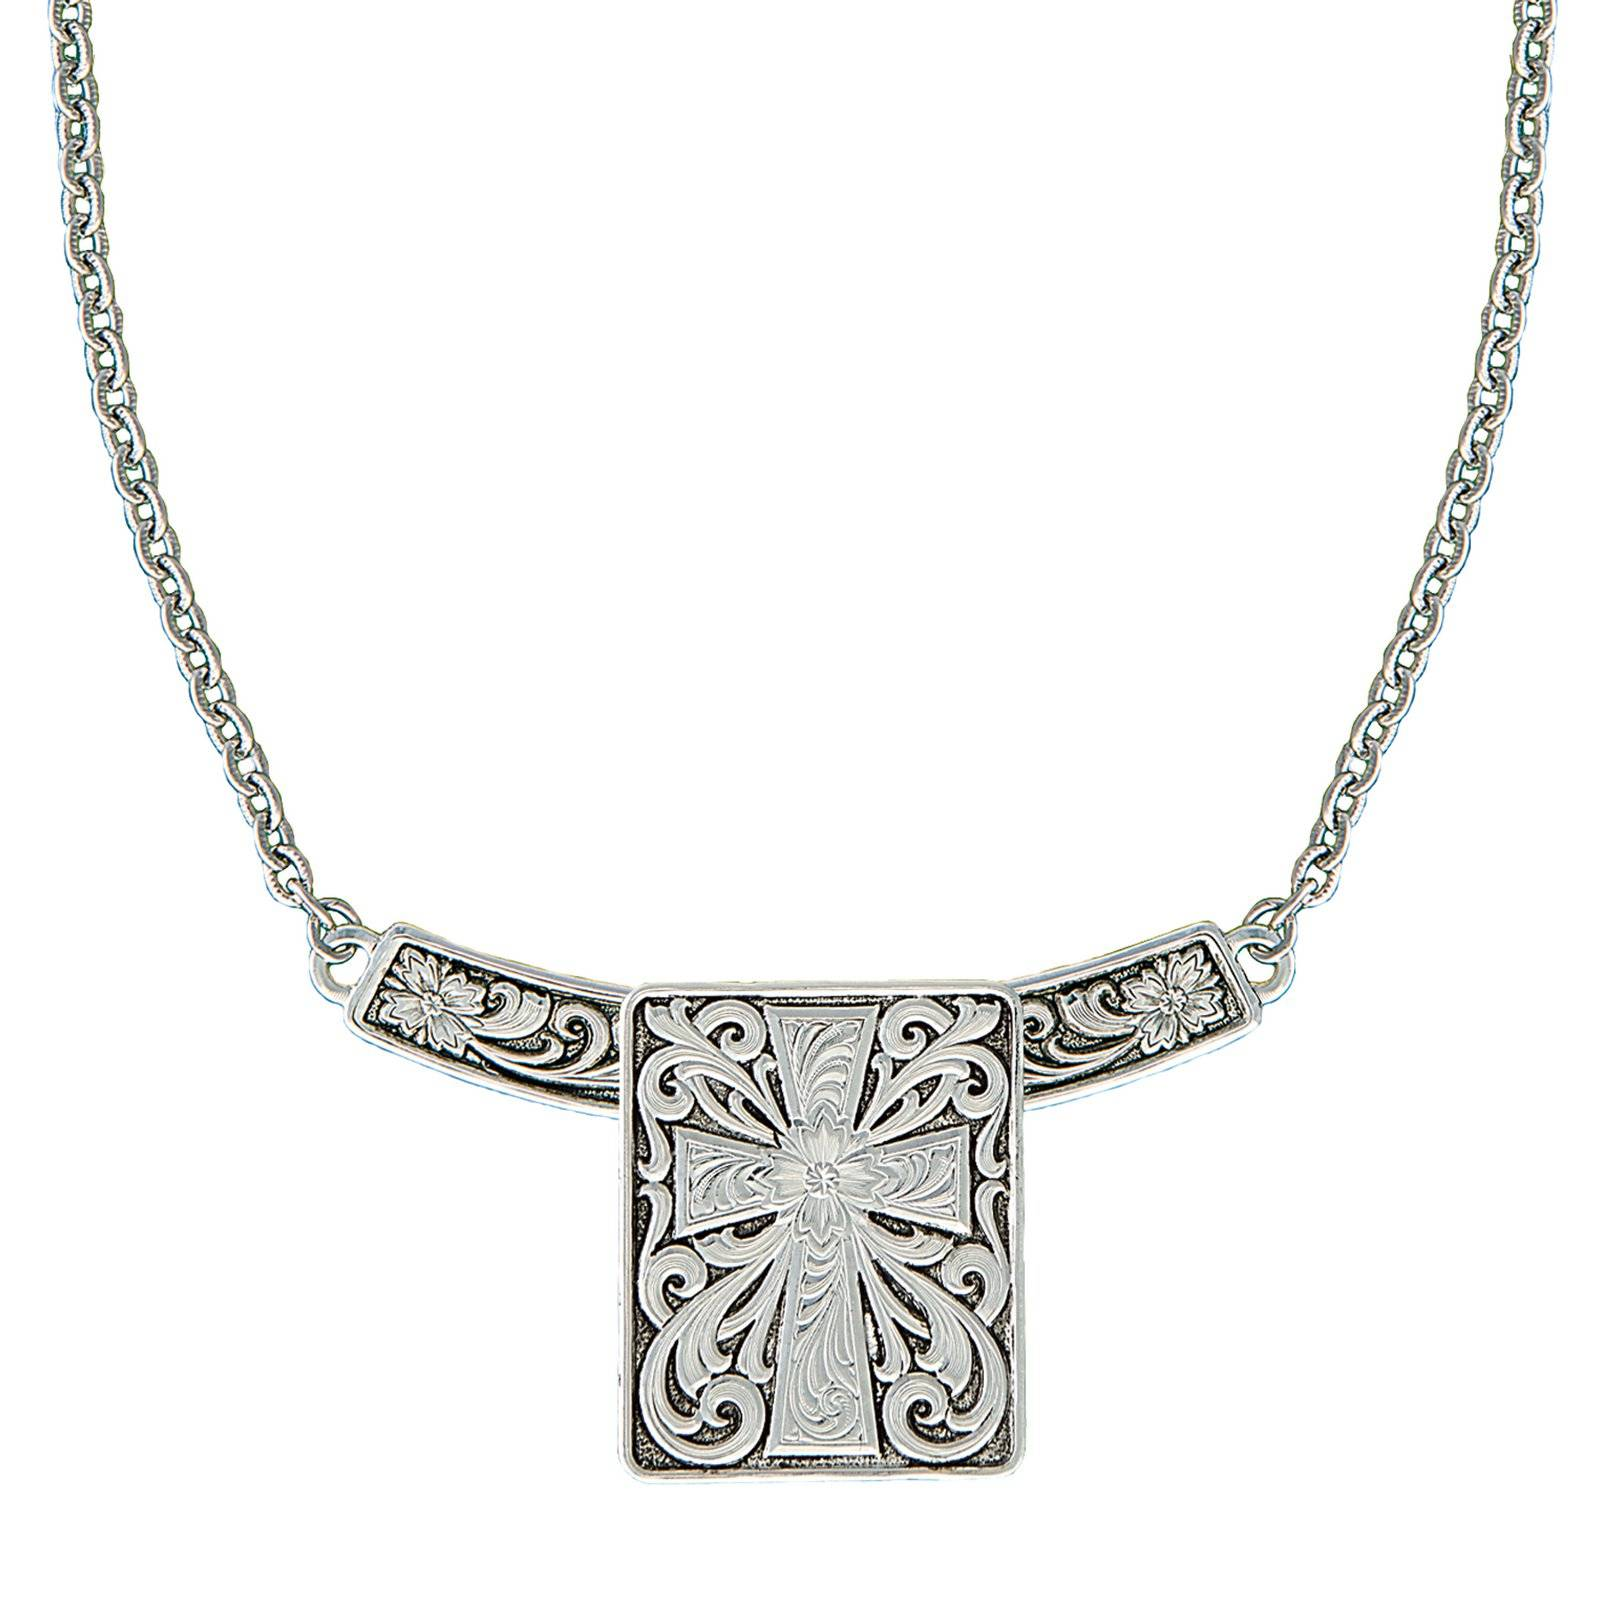 Montana Silversmiths Western Deco Three-In-One Cross Bar Necklace